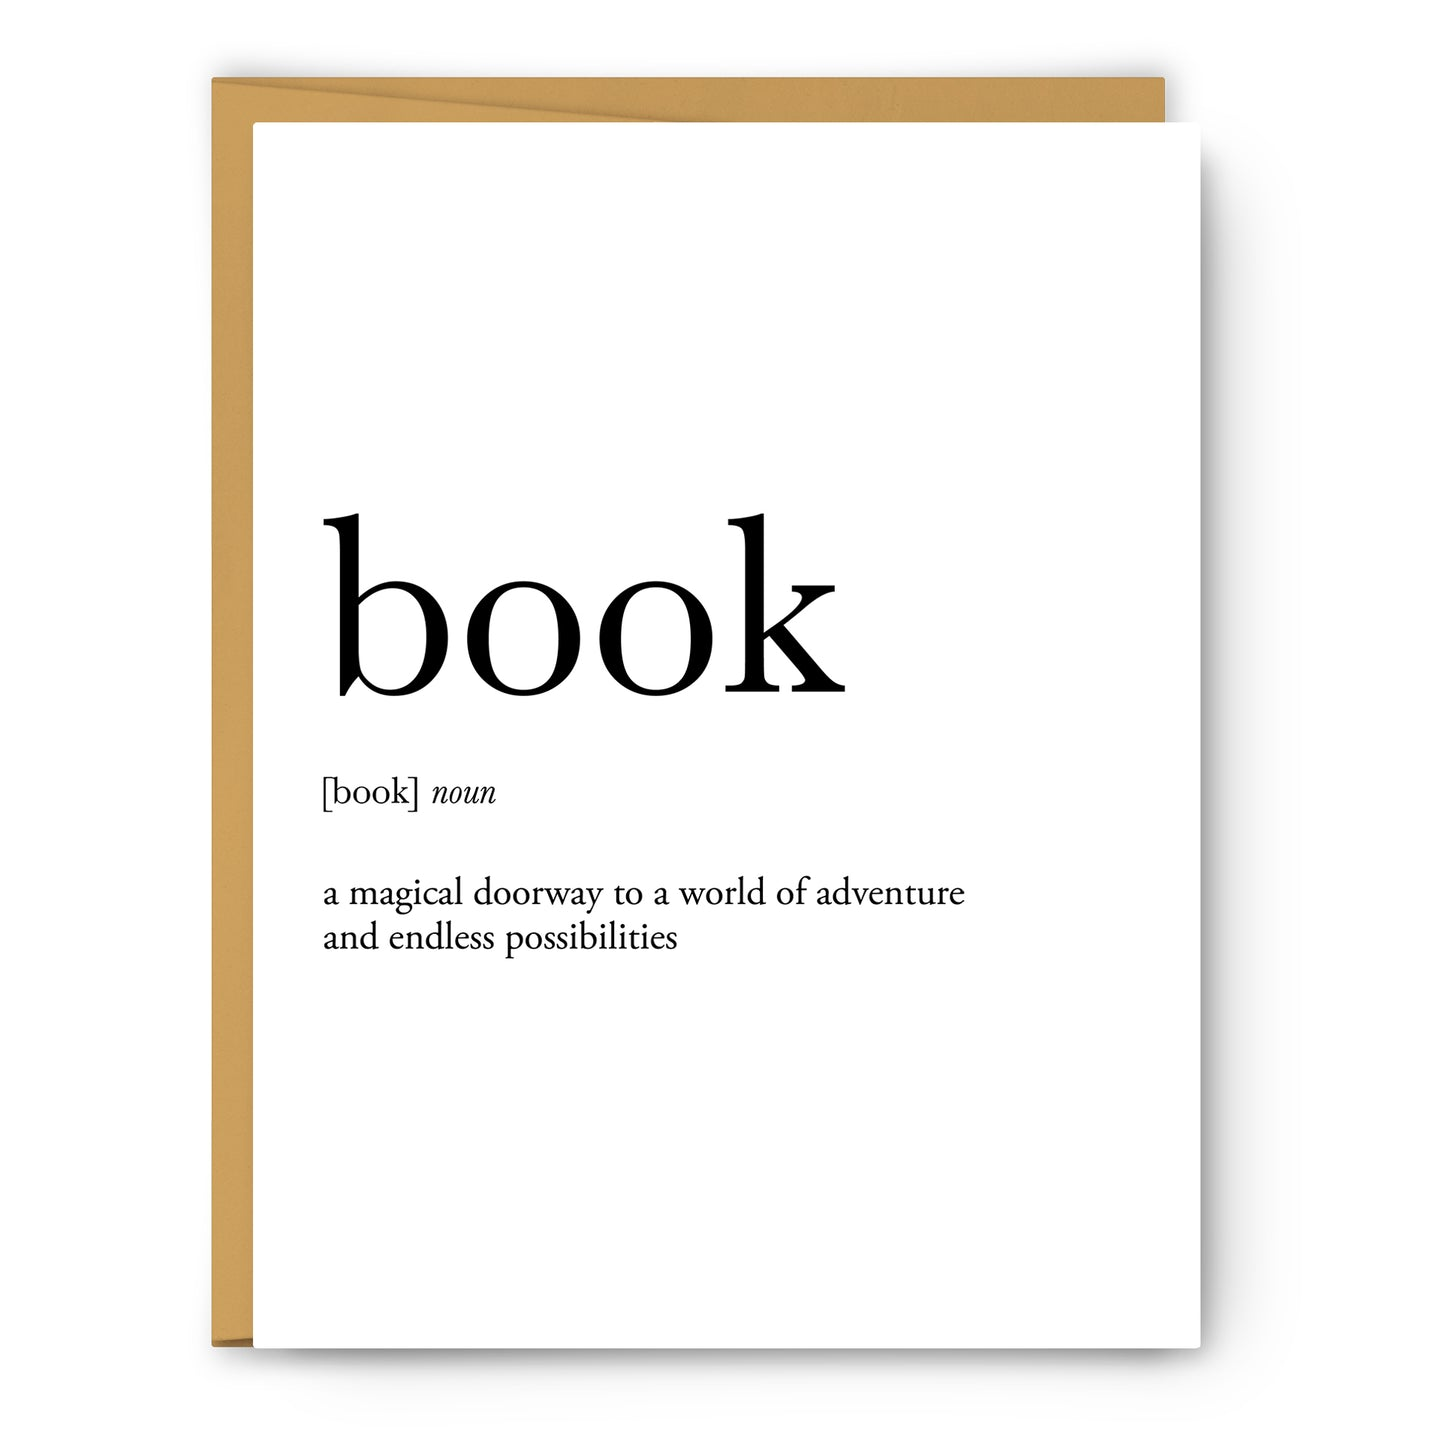 Book Definition - Unframed Art Print Or Greeting Card